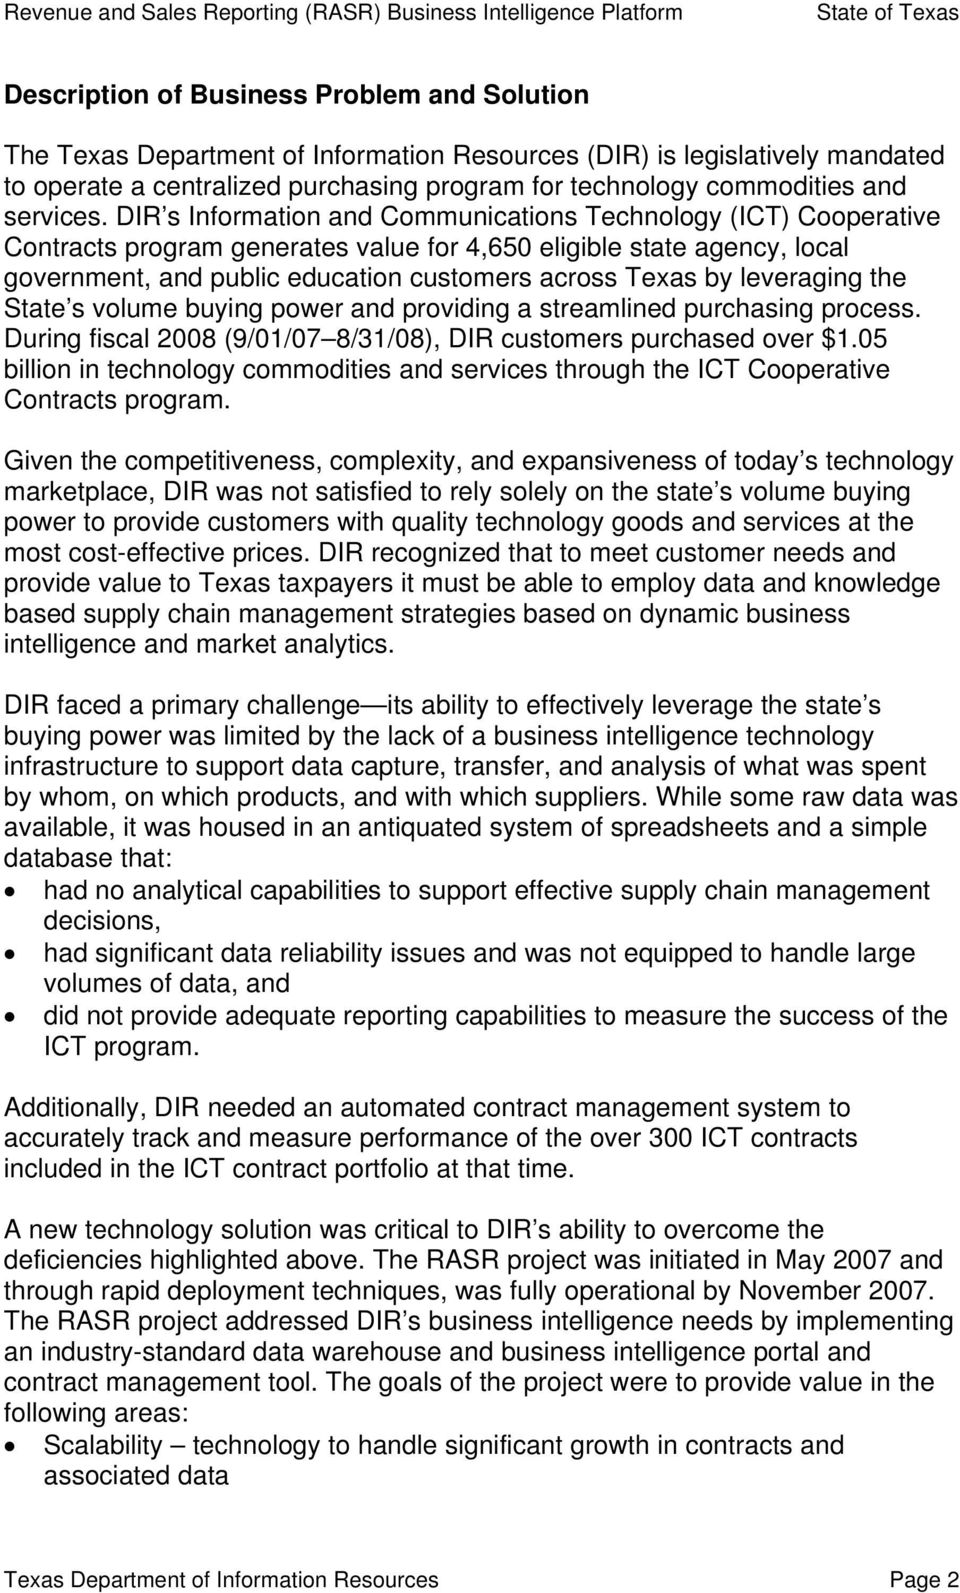 DIR s Information and Communications Technology (ICT) Cooperative Contracts program generates value for 4,650 eligible state agency, local government, and public education customers across Texas by